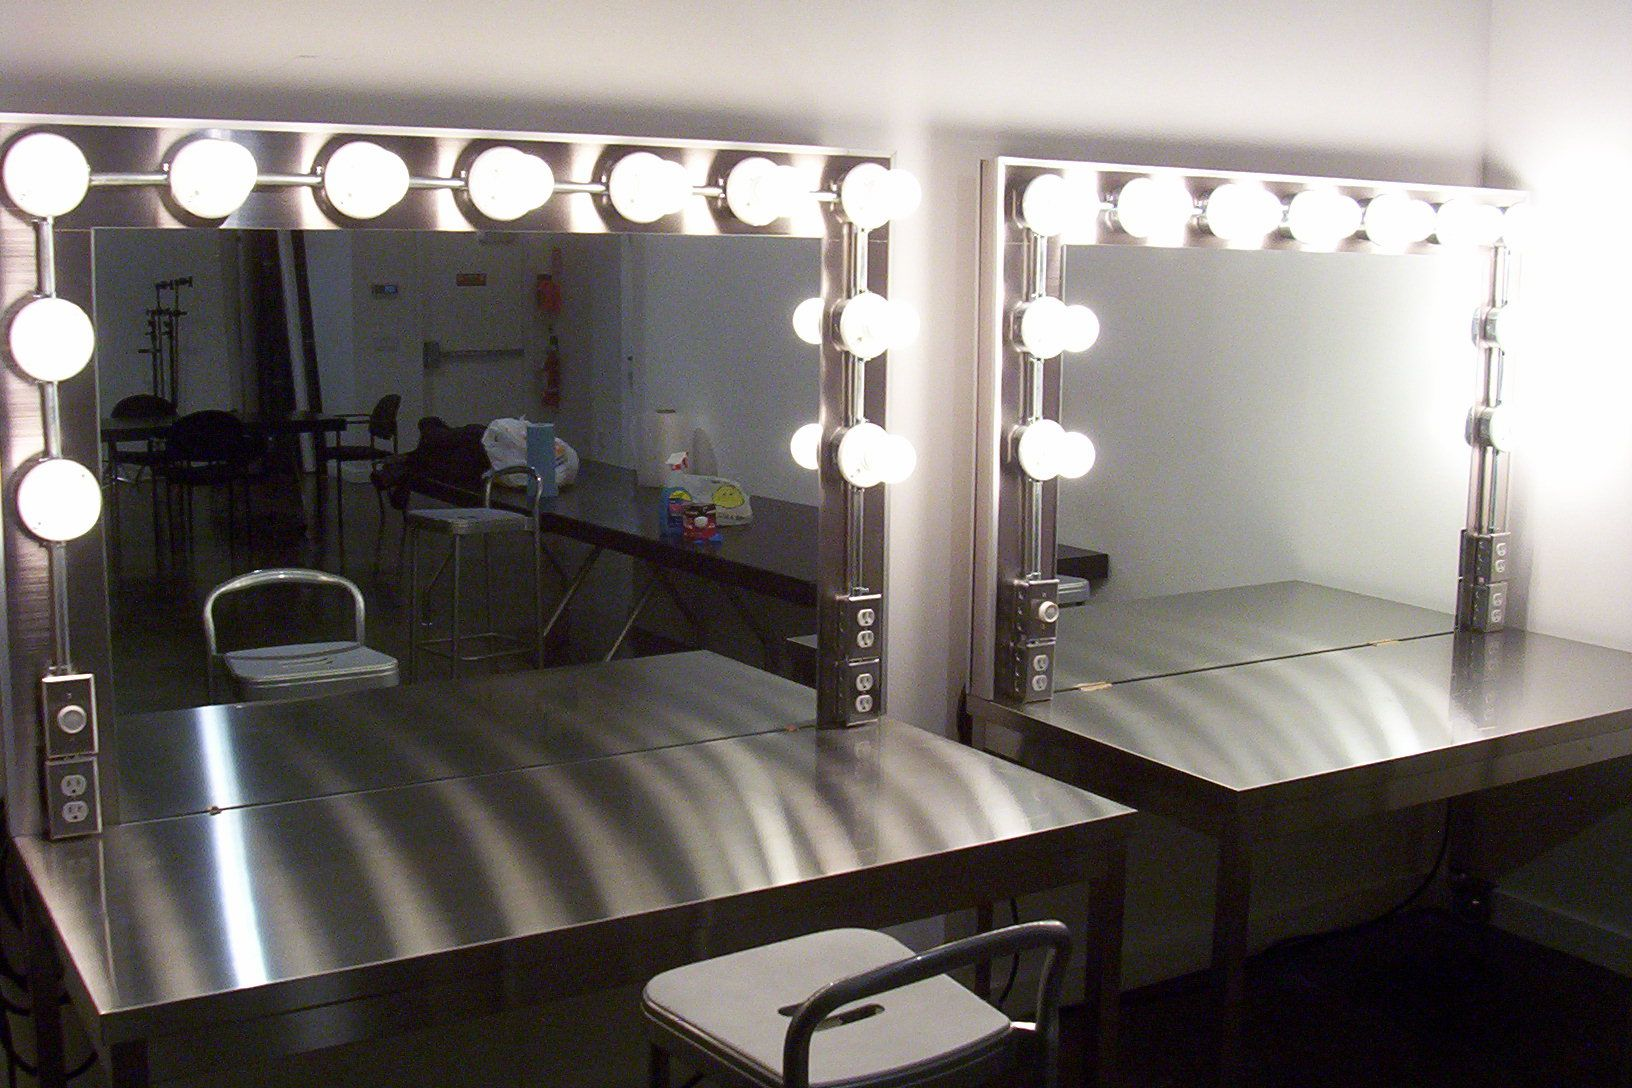 Vanity Lights Table : makeup table with lights - Google Search vanity Pinterest Makeup rooms, Vanities and Lights